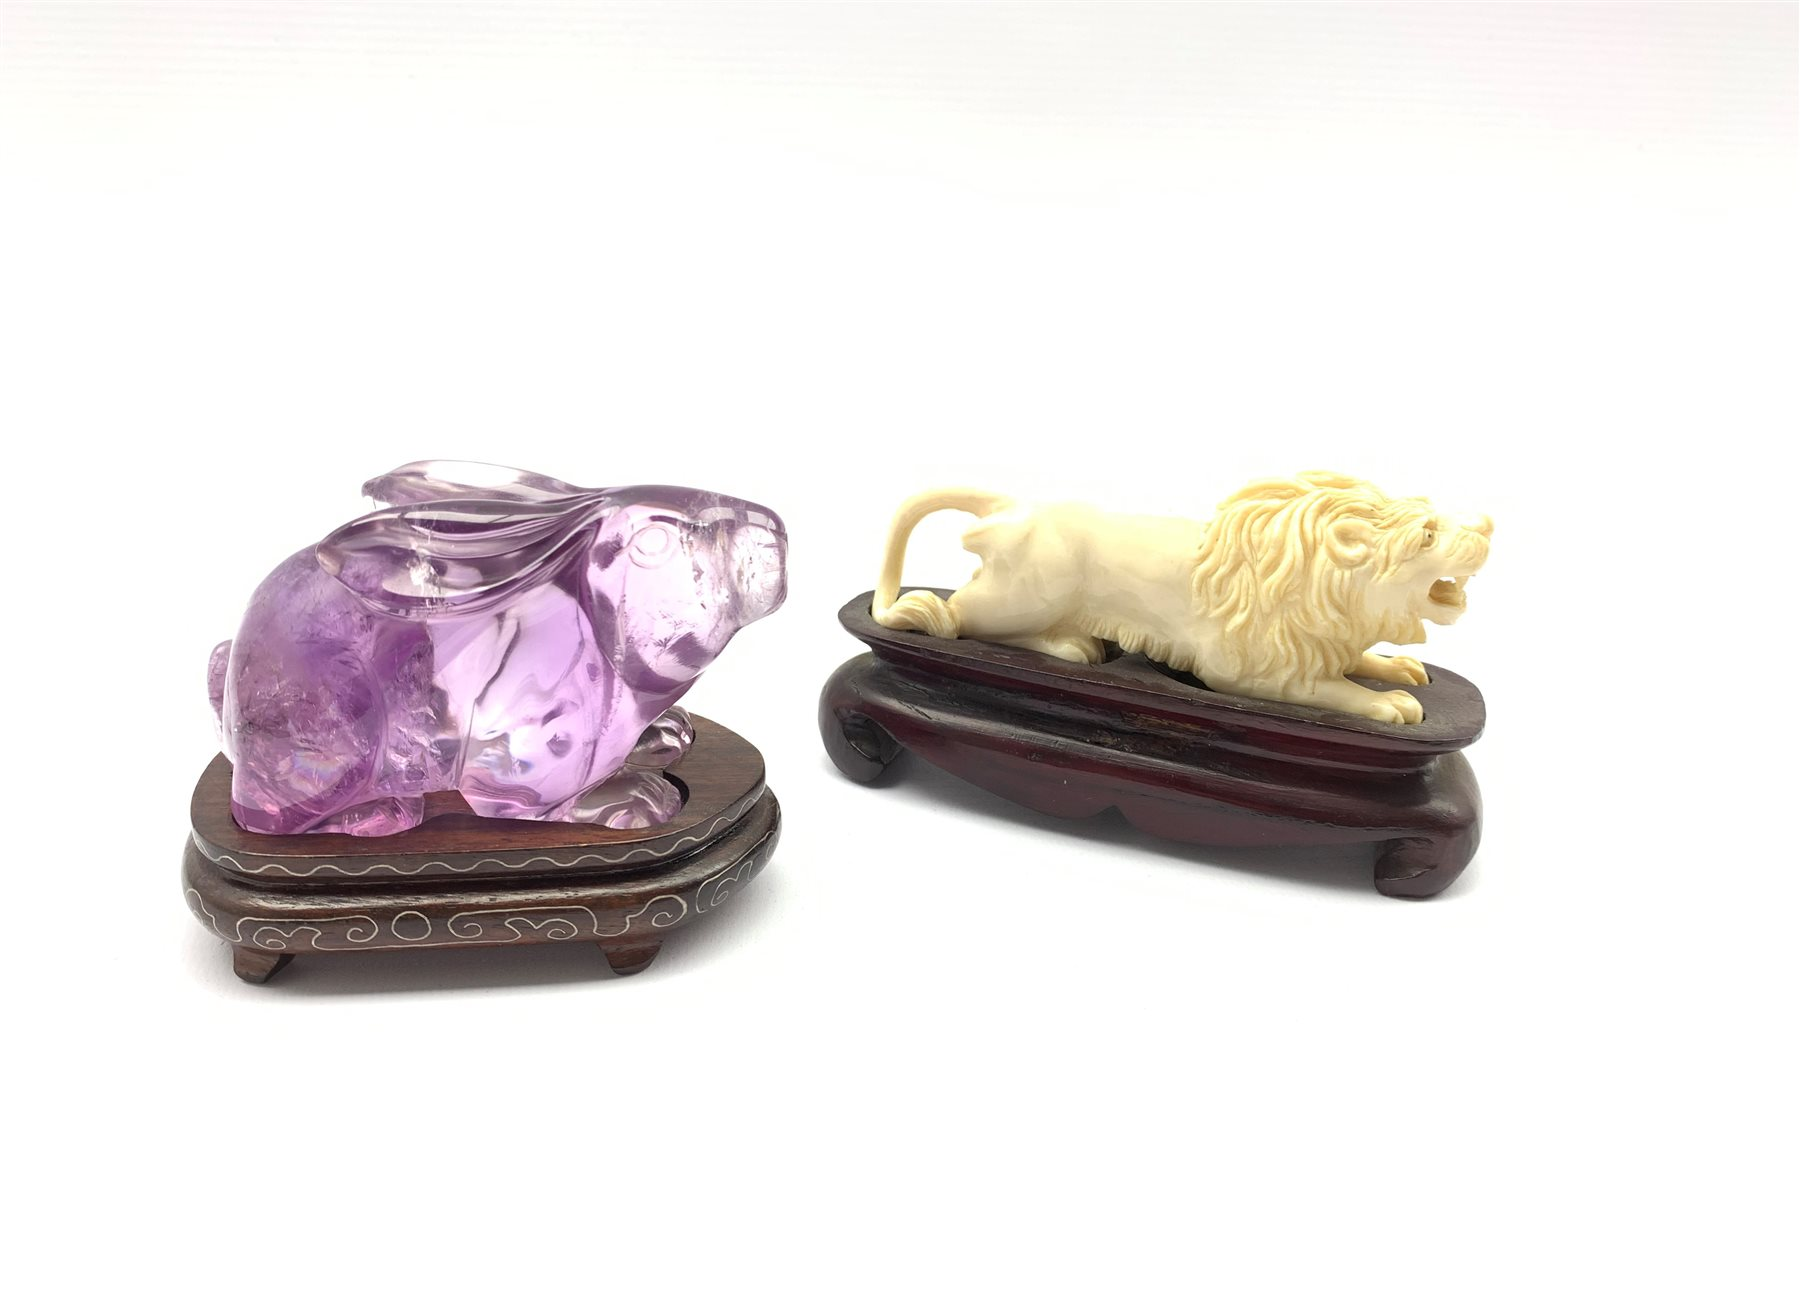 Oriental amethyst glass rabbit on a wooden stand W9cm and an early 20th century carved ivory figure